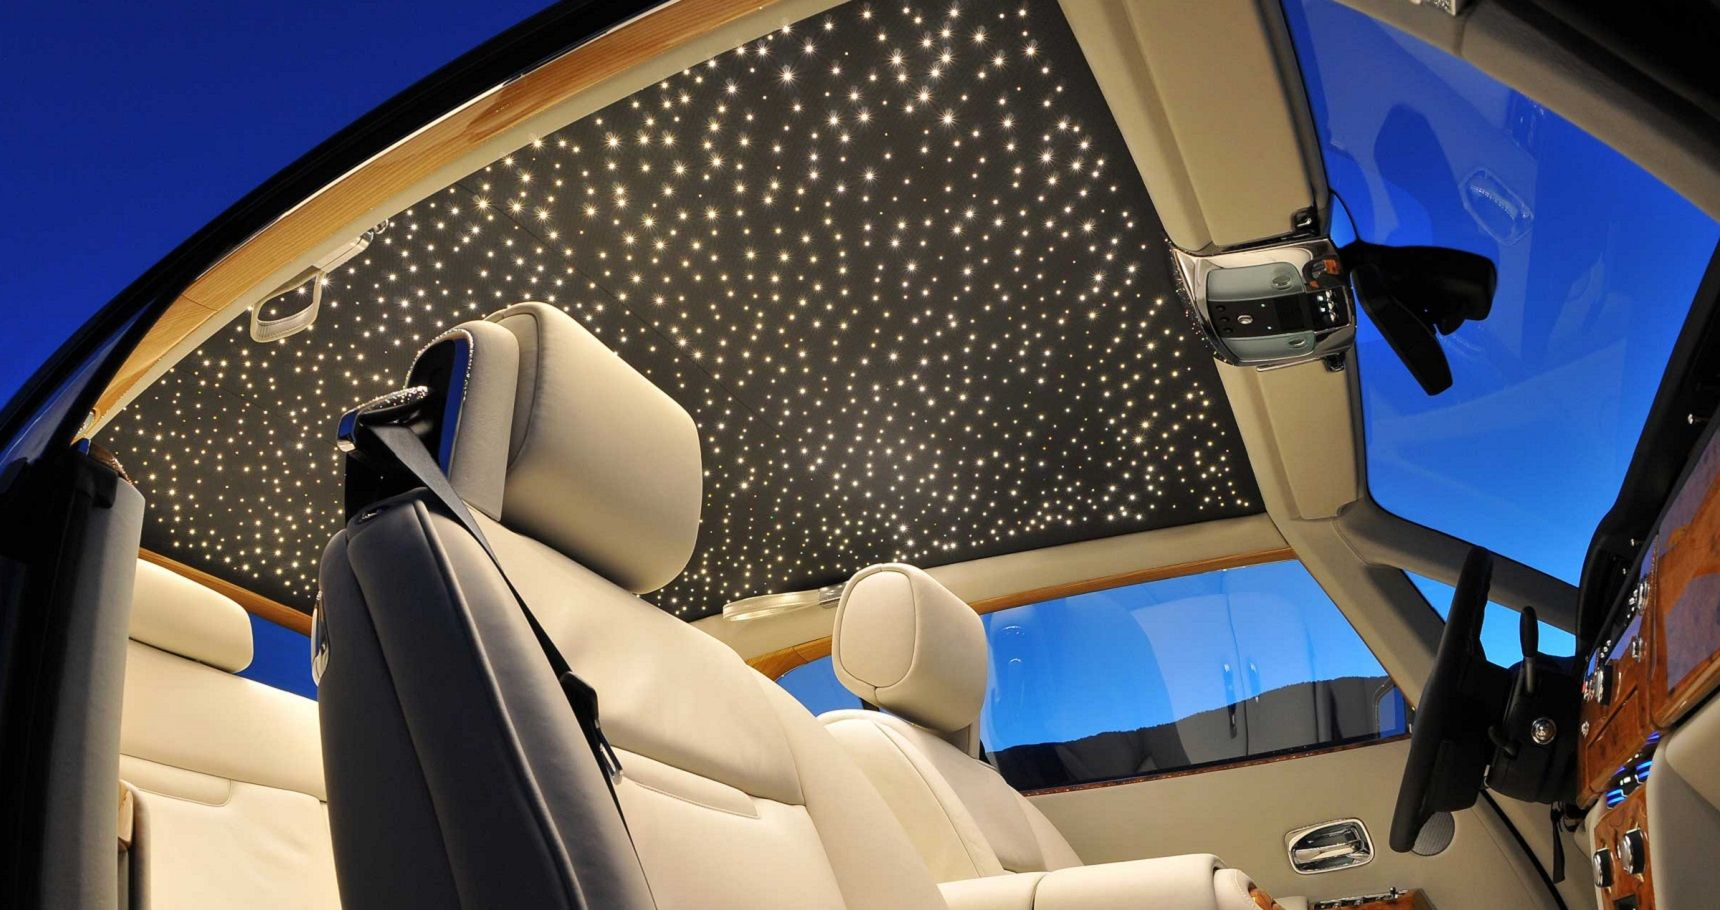 The 10 Most Ridiculous Luxury Car Features